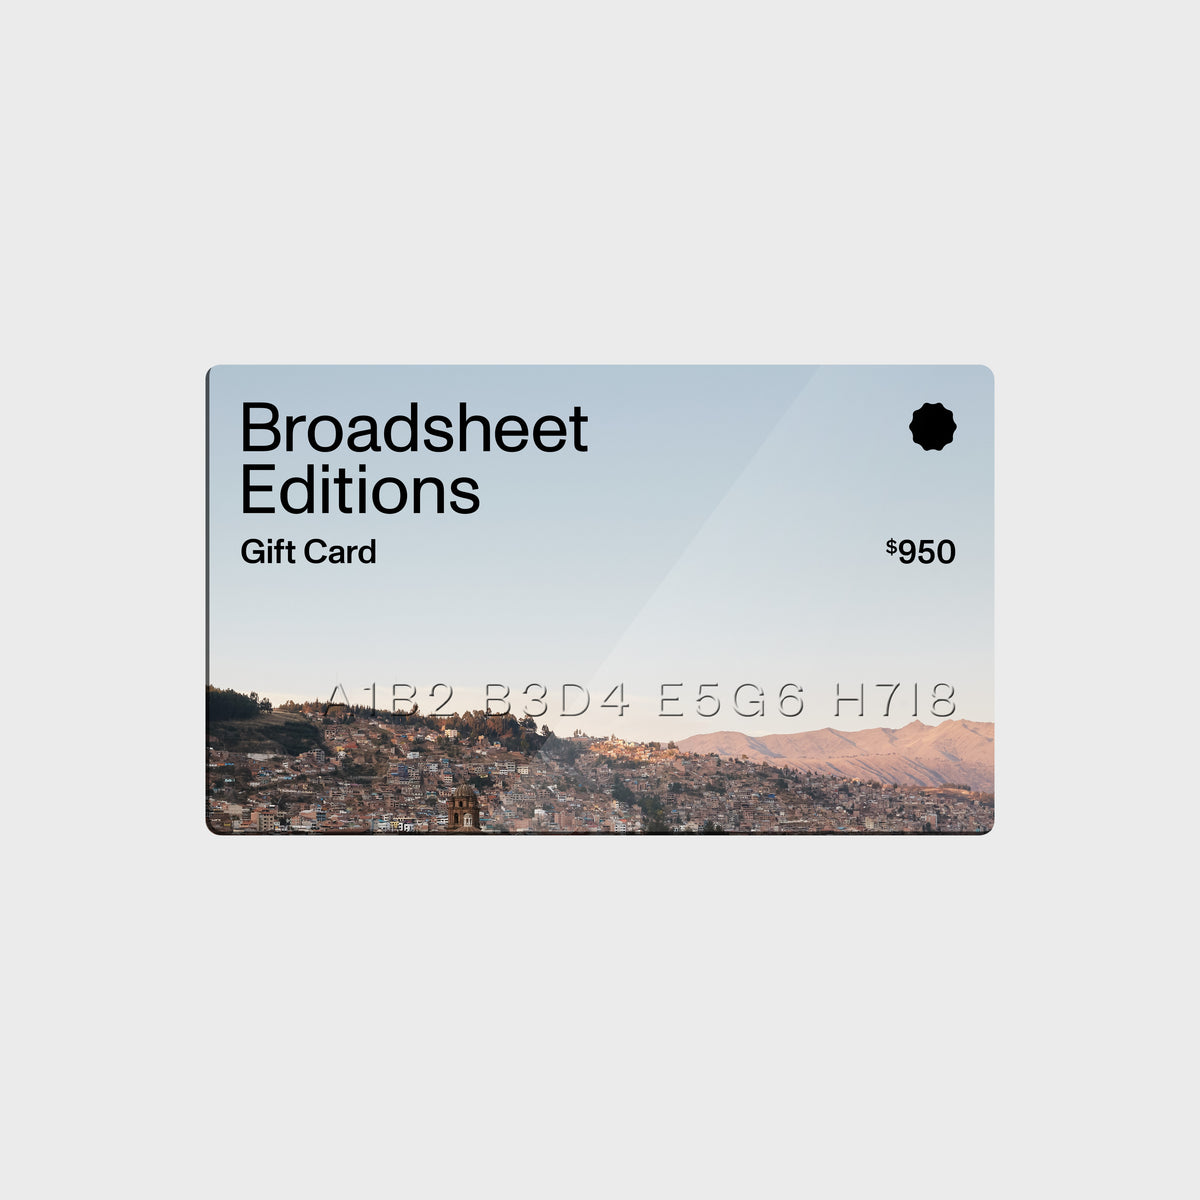 The Broadsheet Editions Gift Card